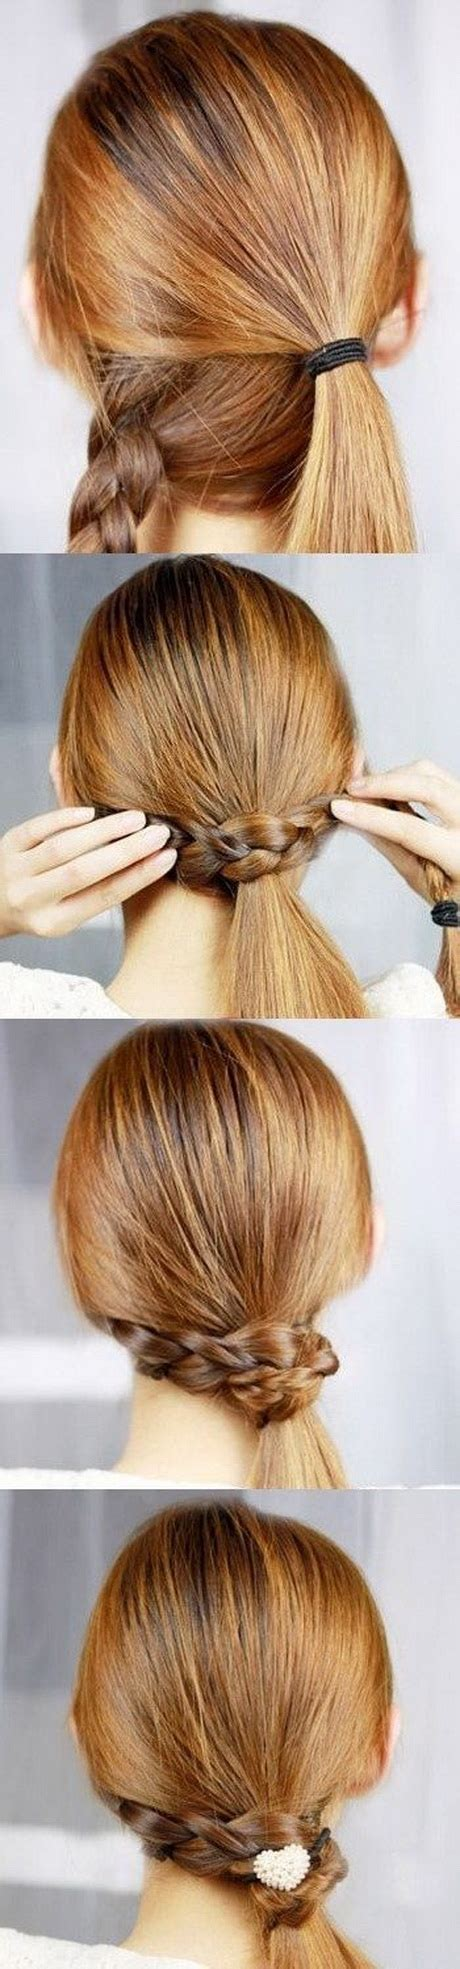 hairstyles to do that are easy easy to do hairstyles for long hair